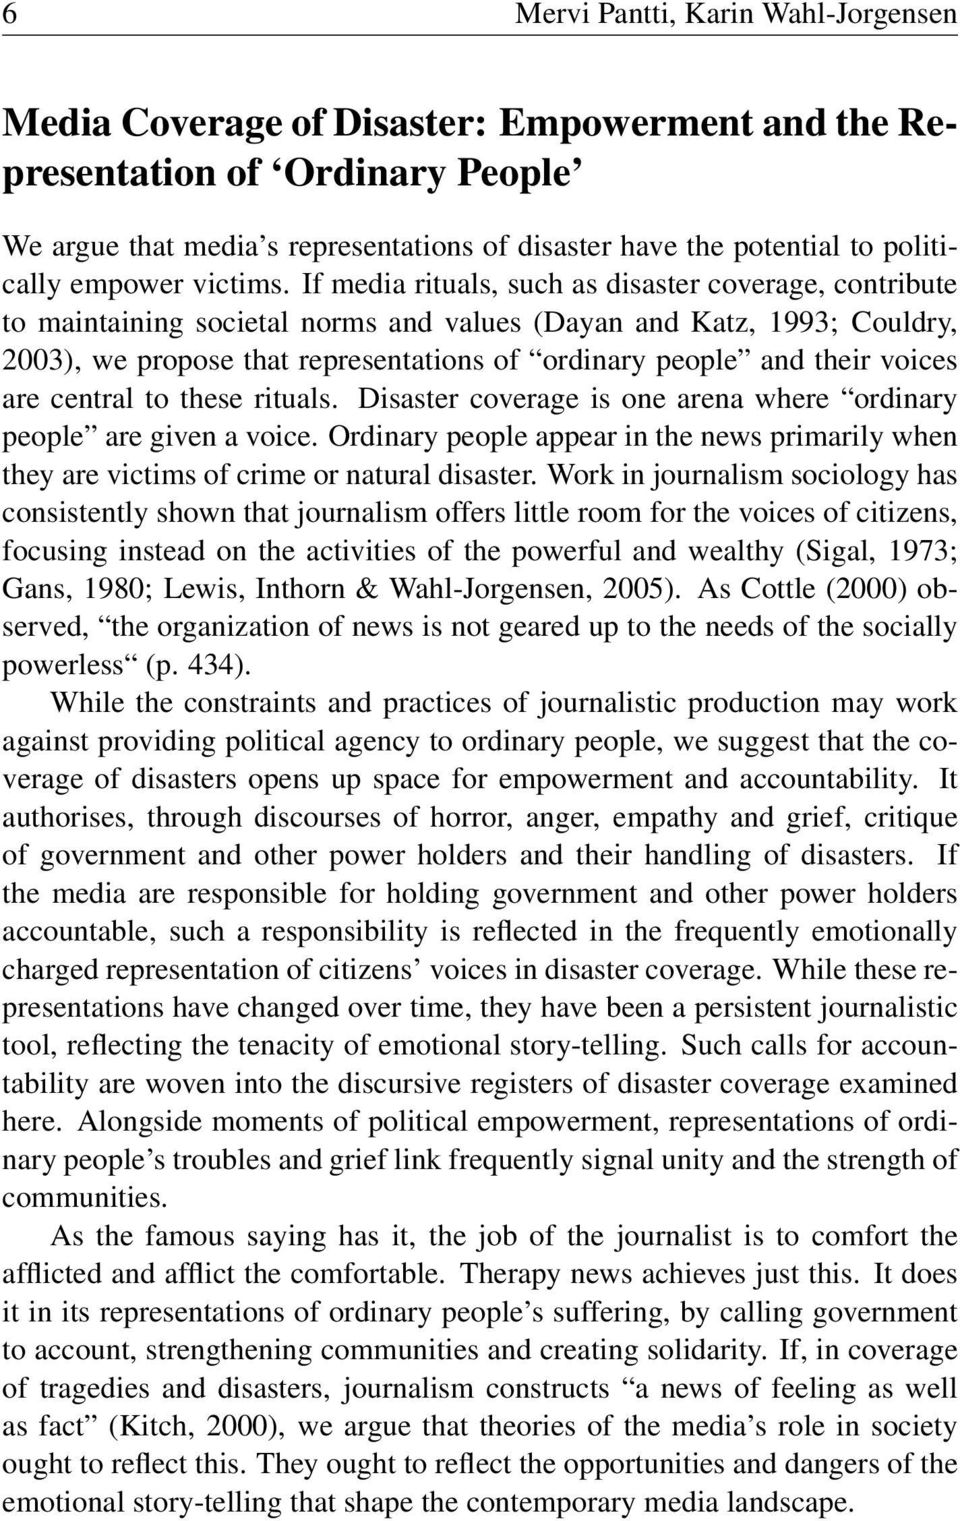 If media rituals, such as disaster coverage, contribute to maintaining societal norms and values (Dayan and Katz, 1993; Couldry, 2003), we propose that representations of ordinary people and their